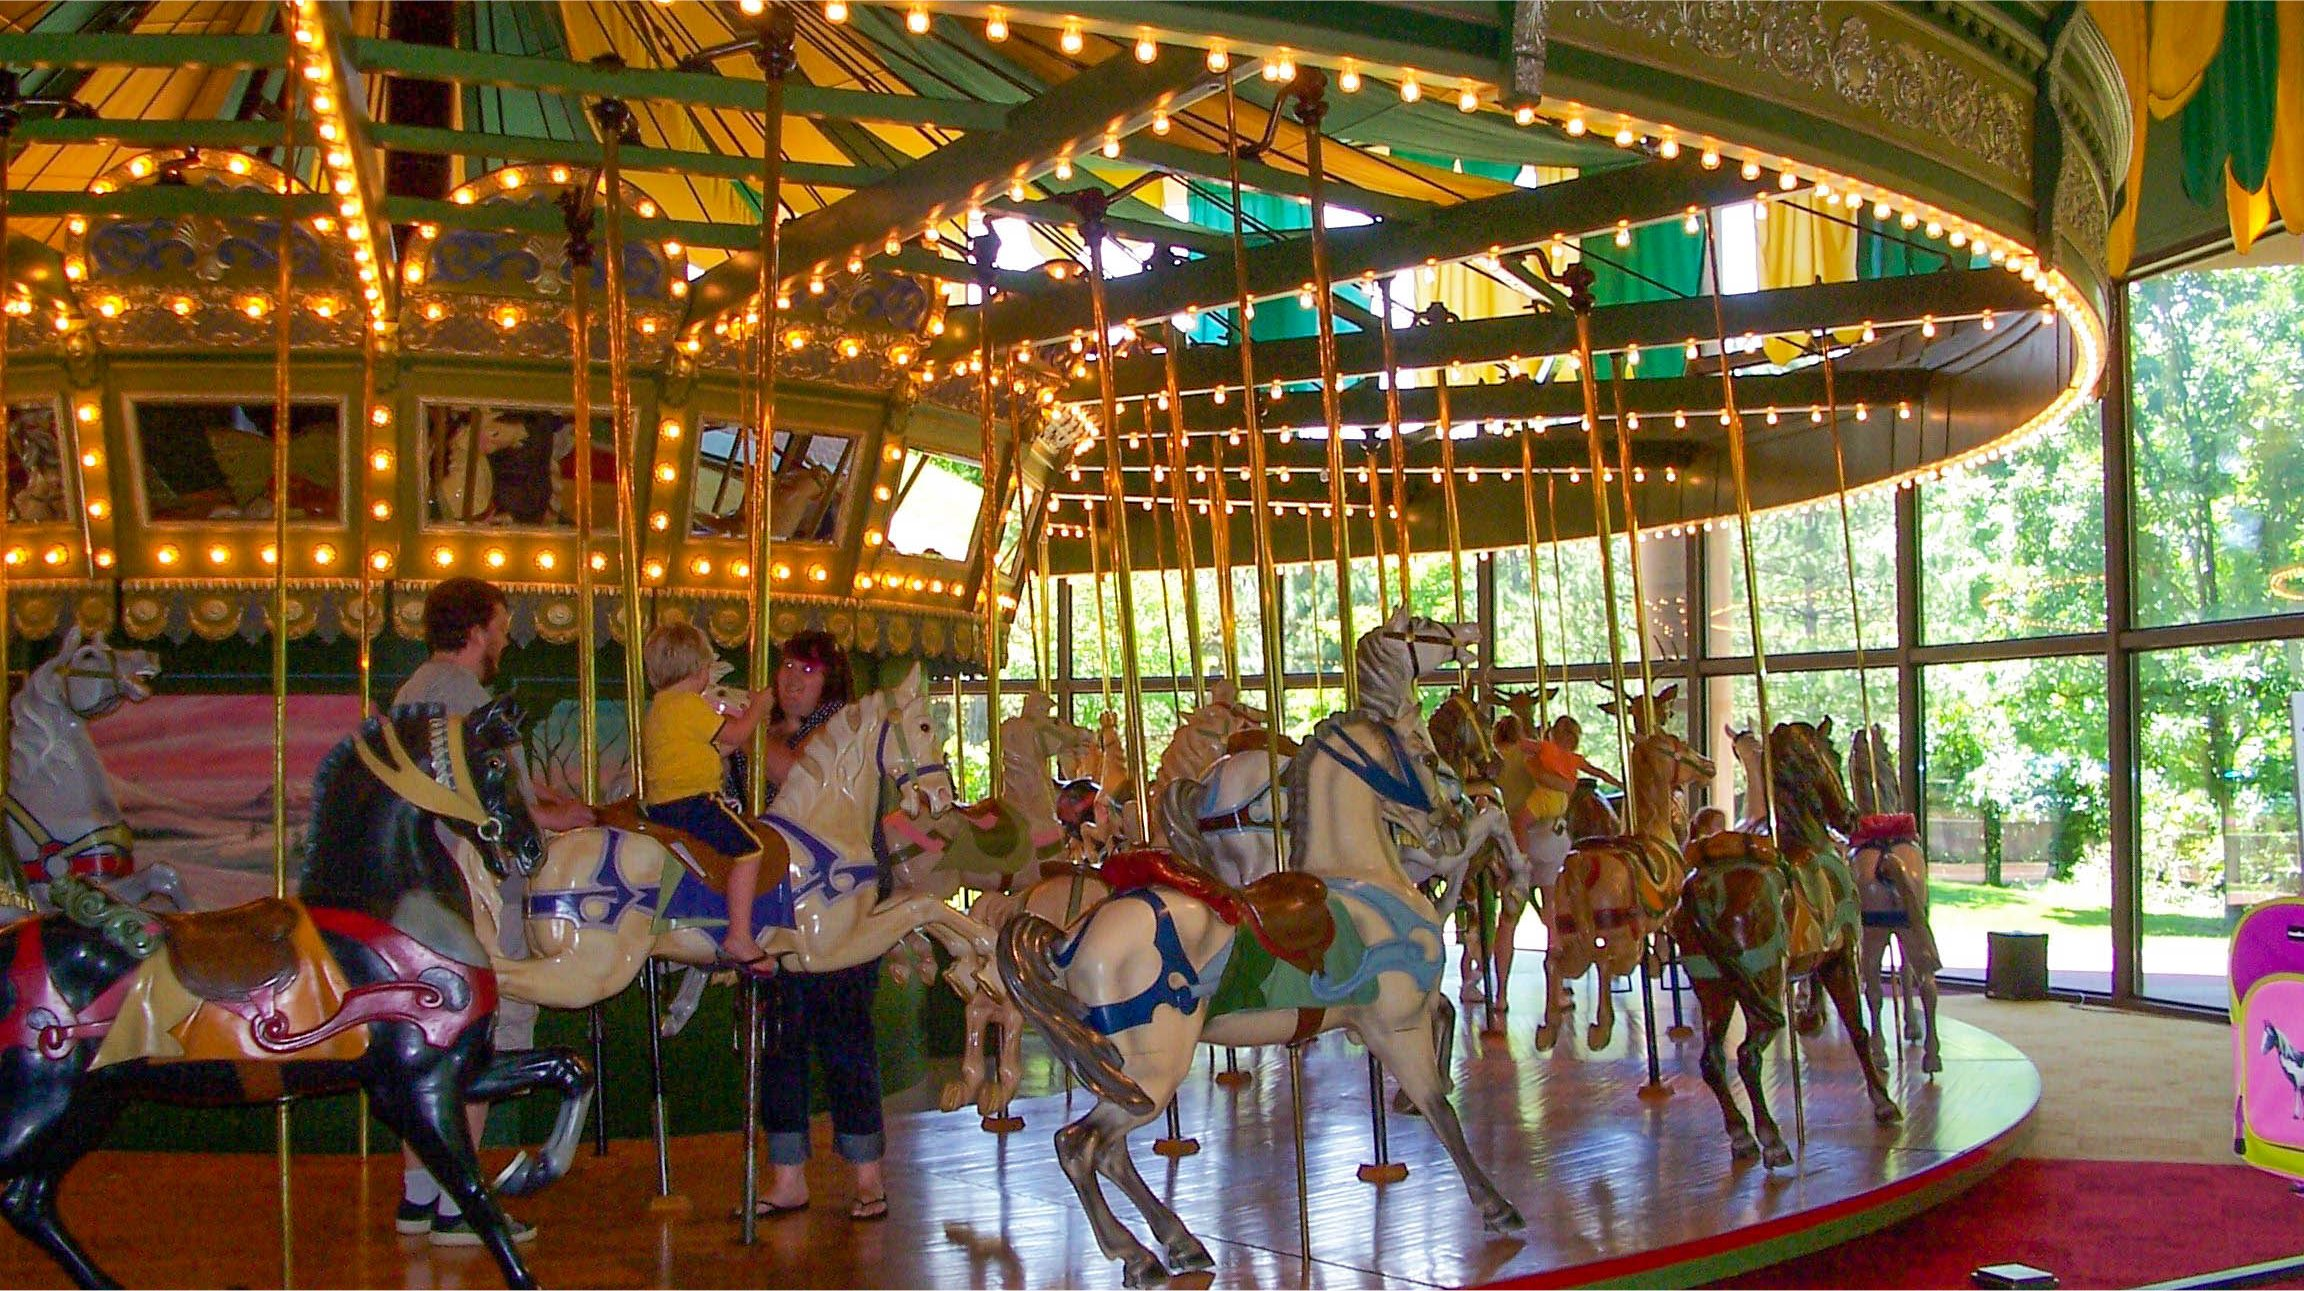 The Saint Louis Carousel, Faust Park Chesterfield, Missouri